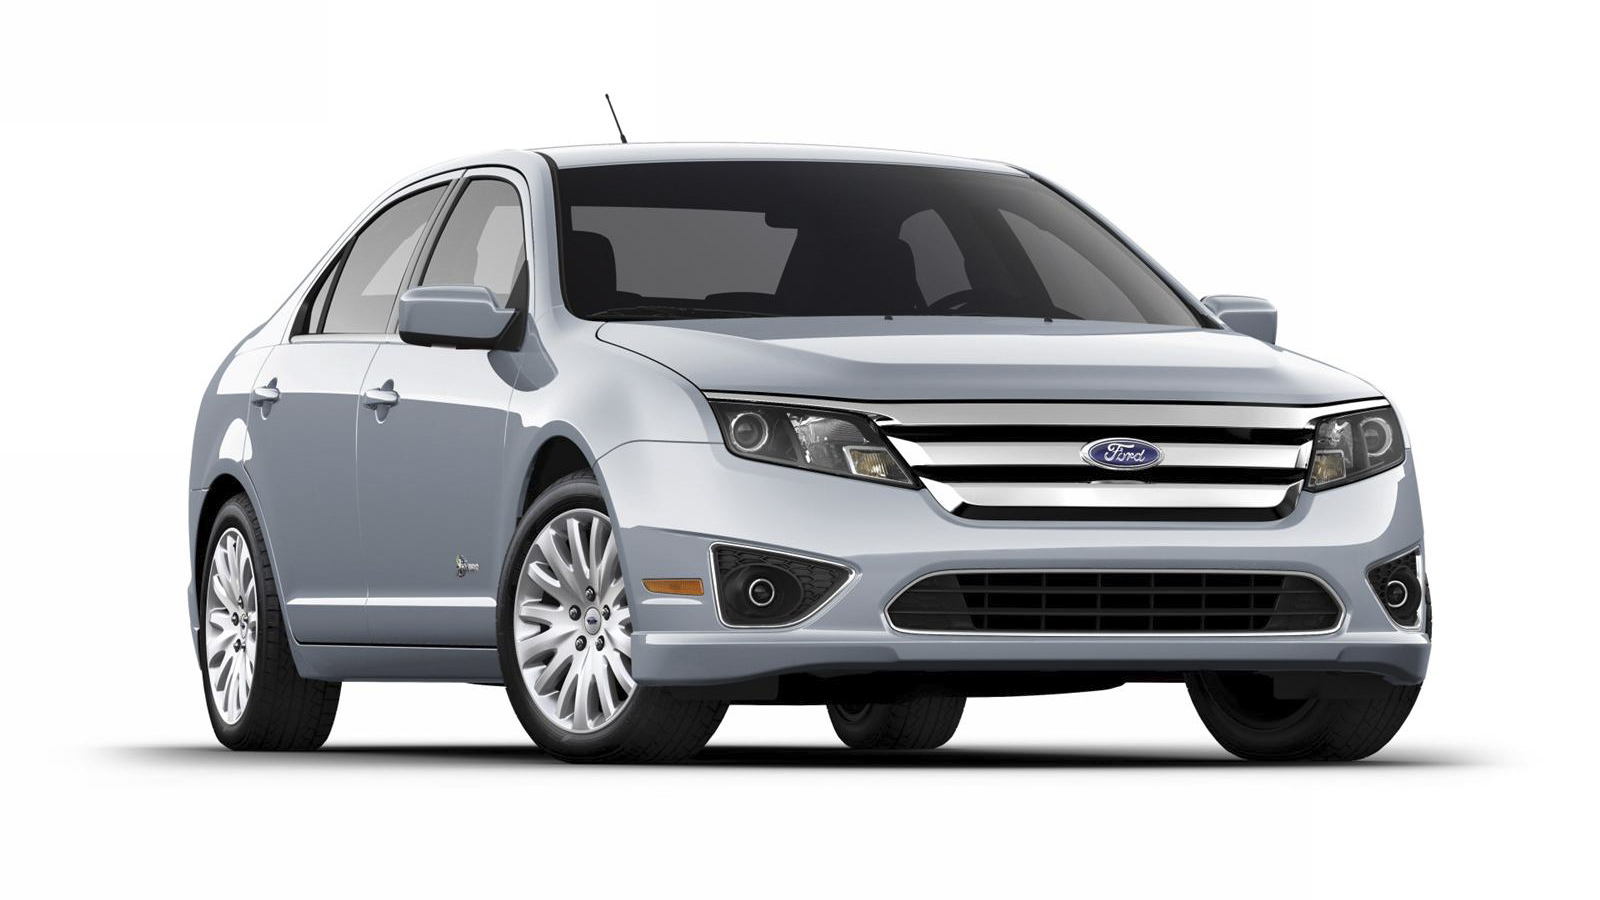 ford gas tank recall impacts 452 000 cars. Black Bedroom Furniture Sets. Home Design Ideas